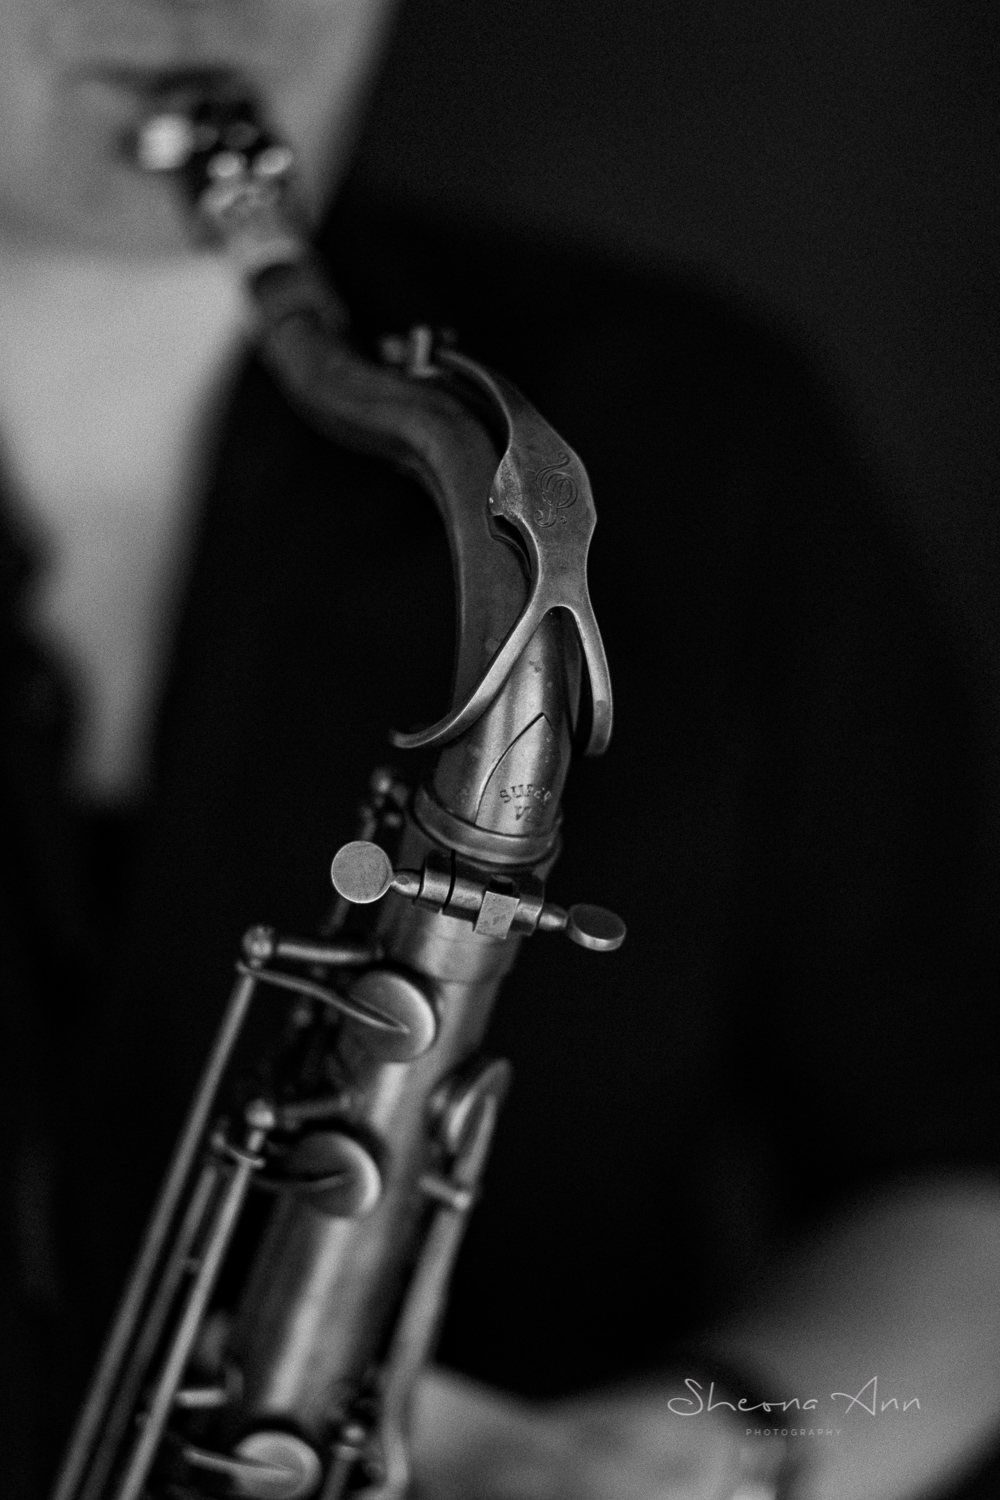 Detail of saxophone